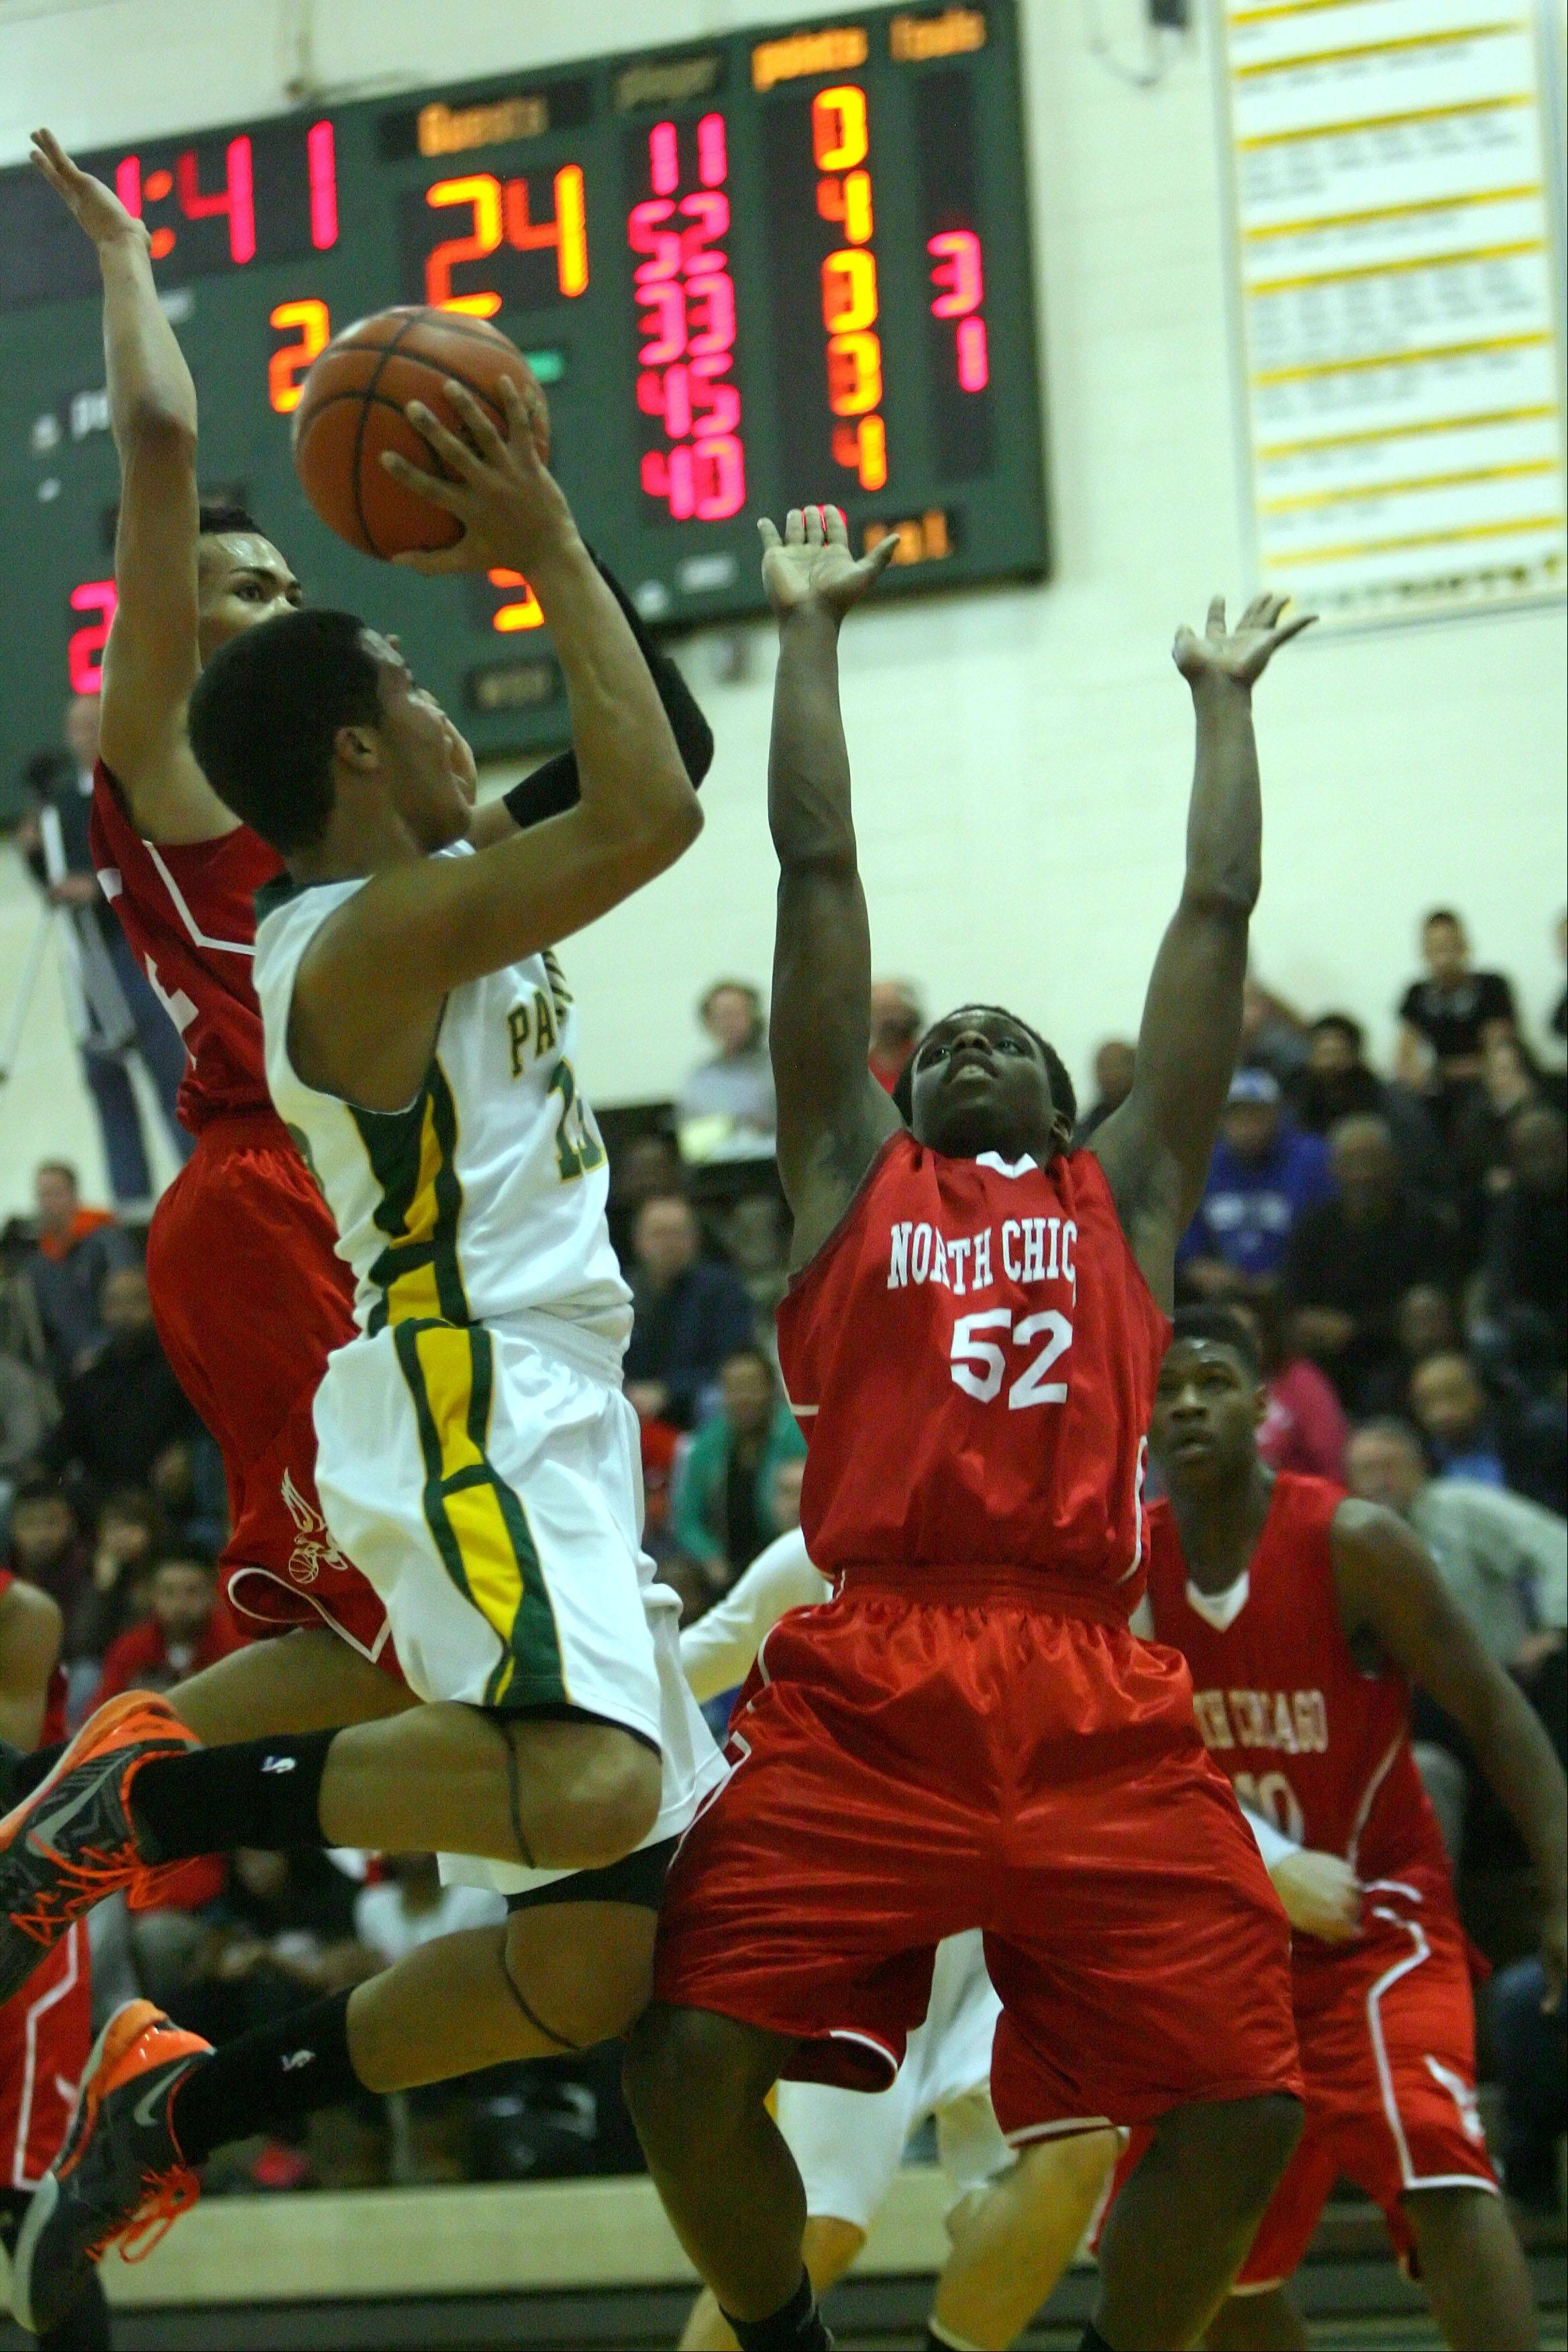 Images from the North Chicago vs. Stevenson boys basketball game on Wednesday, Feb. 20 in Lincolnshire..